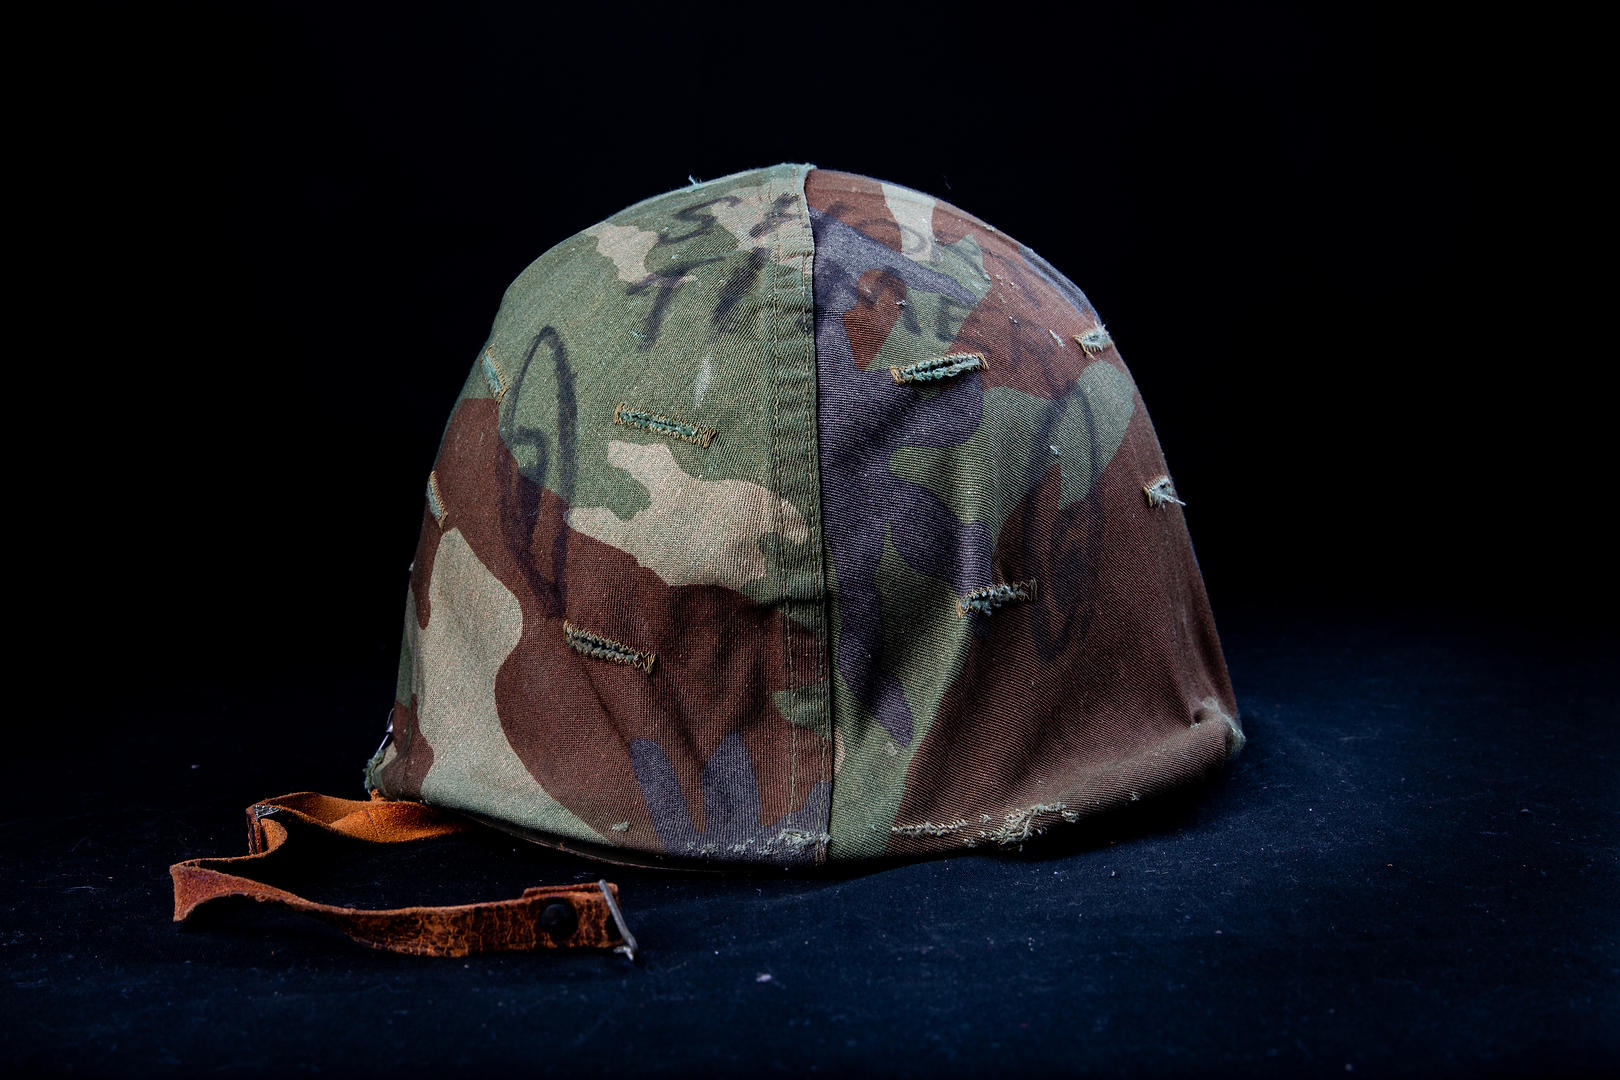 """A helmet from the Vietnam War-era was donated to the Syracuse Vet Center. The word on the helmet said """"short-timer,"""" refering to a soldier nearing the end of their service."""